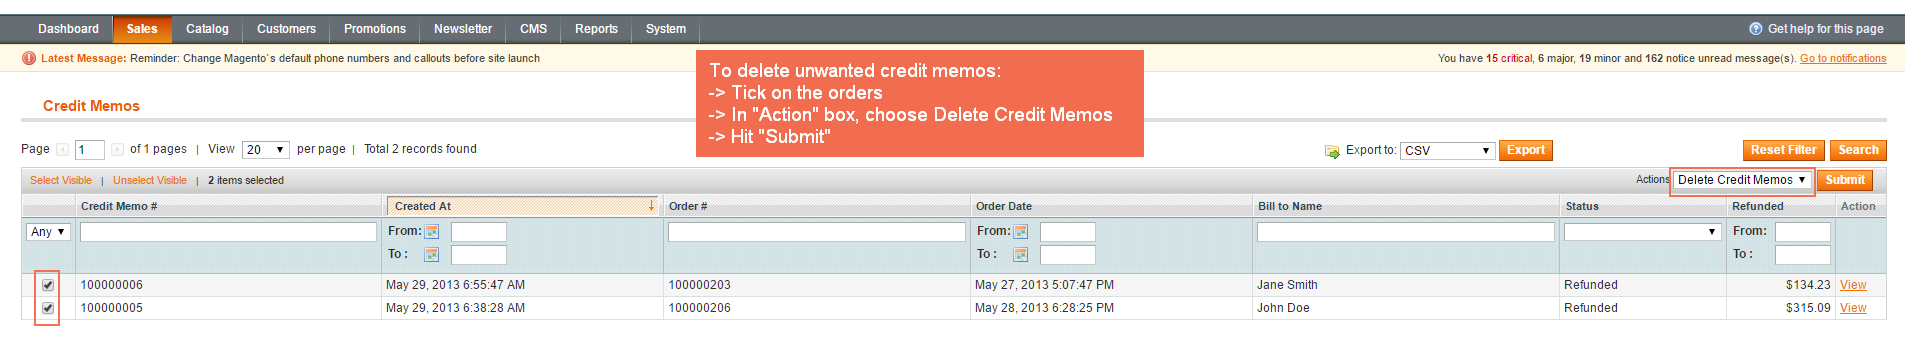 pick credit memos in grid to delete